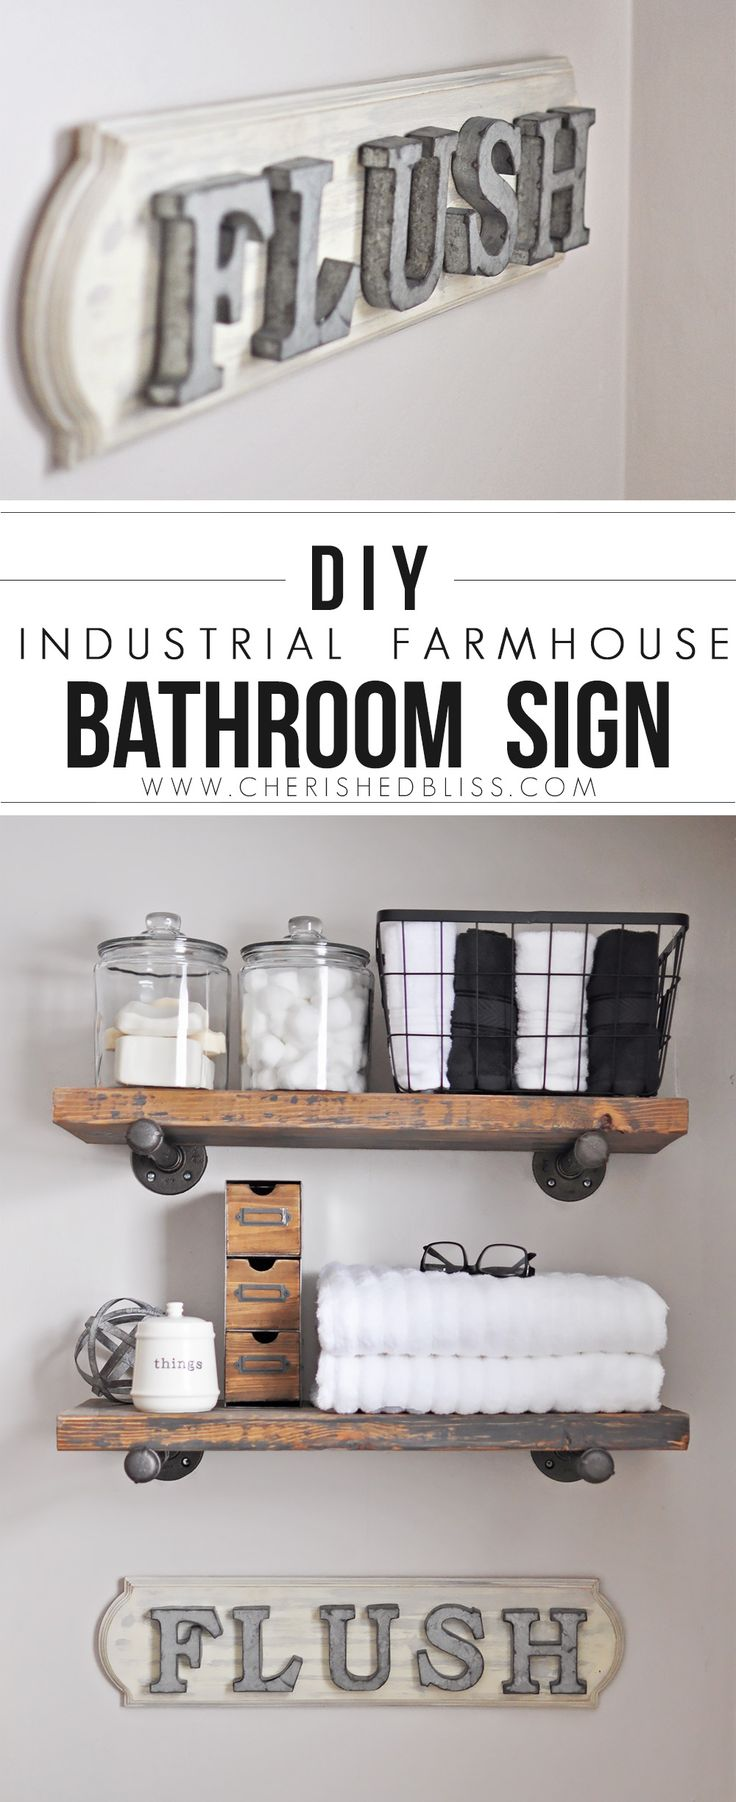 If you like rustic decor, this DIY industrial farmhouse bathroom sign will fit right in. | Jon-E-VAC | (888) 942-3935 | www.jonevac.com